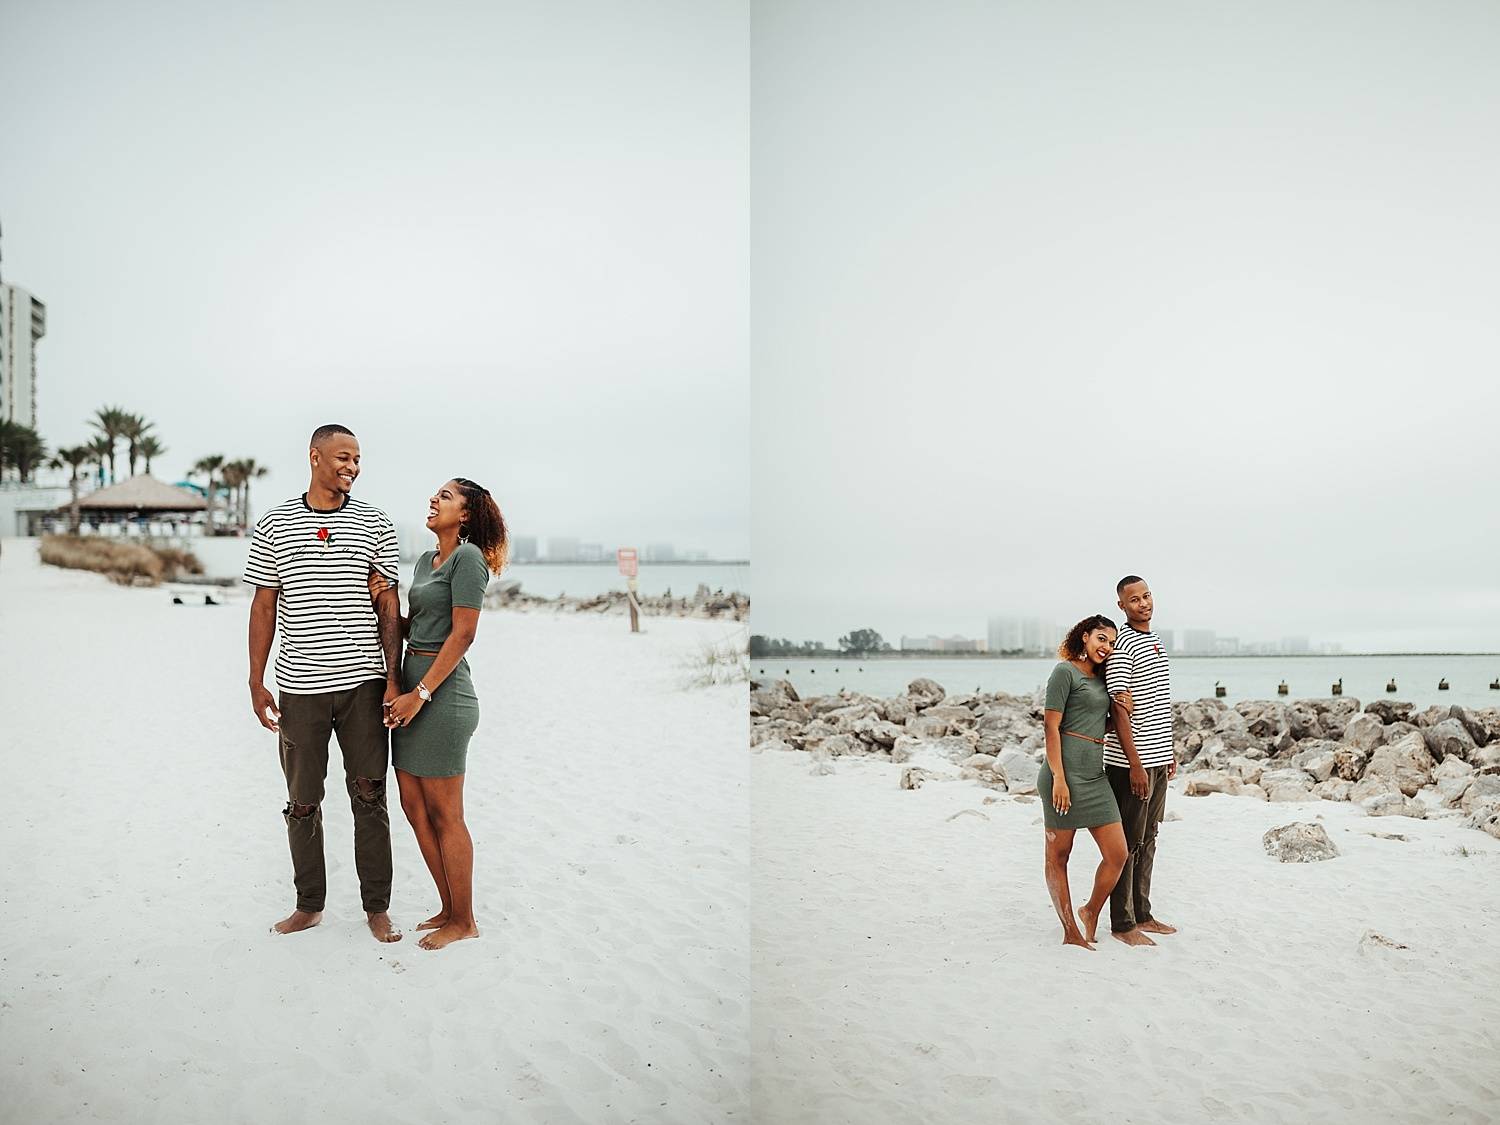 Clearwater Beach Couples Session, Clearwater Beach Engagement Photos, Clearwater Beach Engagement Photo Ideas, Ashley Izquierdo, Clearwater Beach, Tampa Wedding Photographers, Tampa Wedding Photographer, Tampa Engagement Photos, Tampa Photographer, Best Tampa Photographers